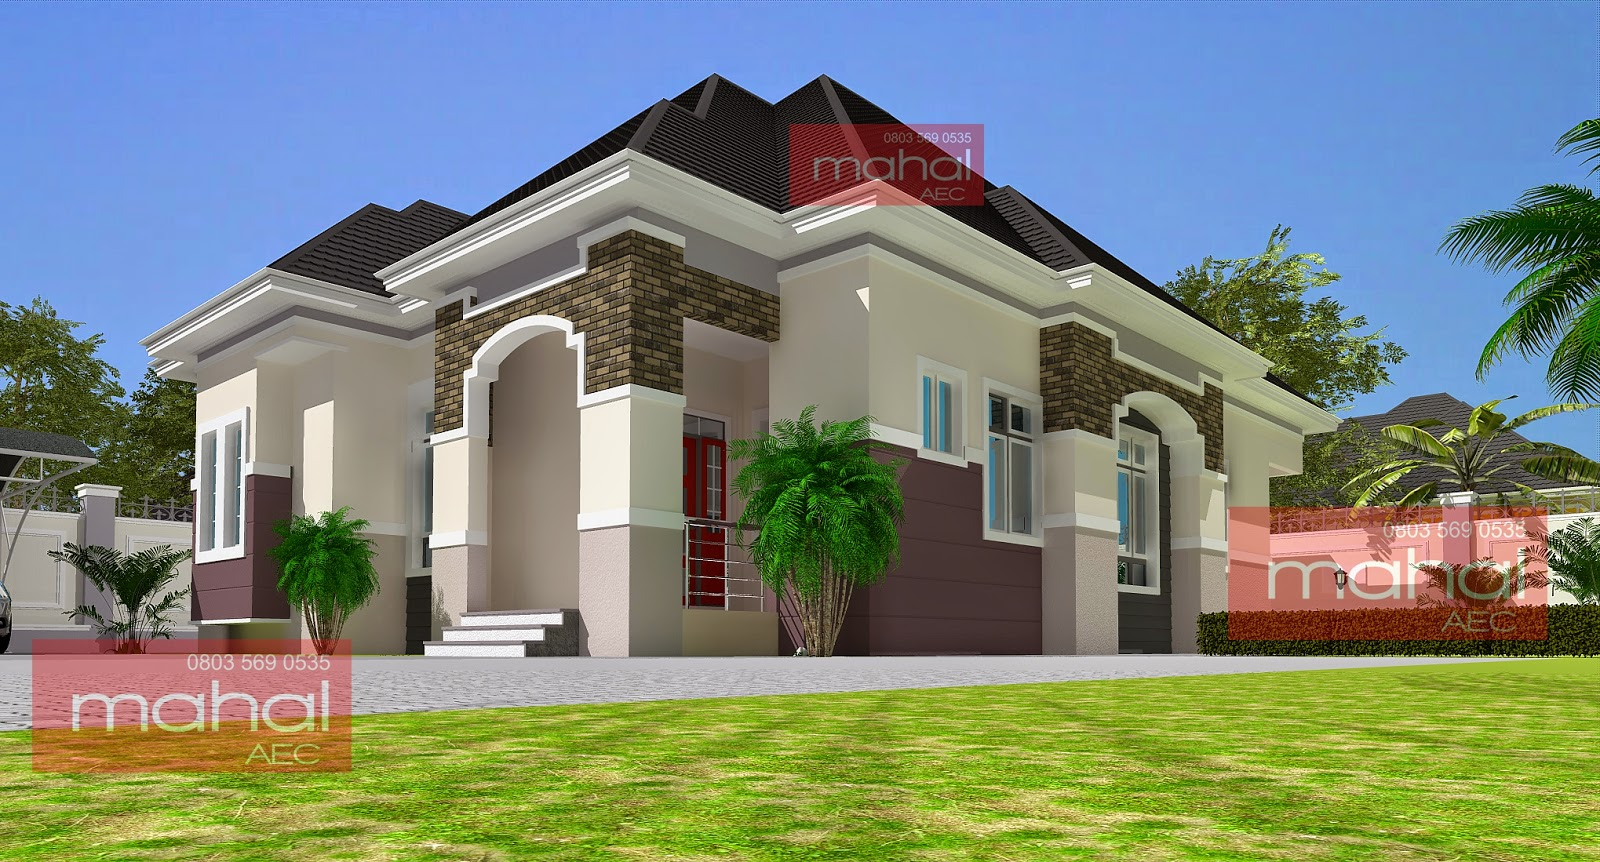 Contemporary nigerian residential architecture 3 bedroom for Nigerian home designs photos